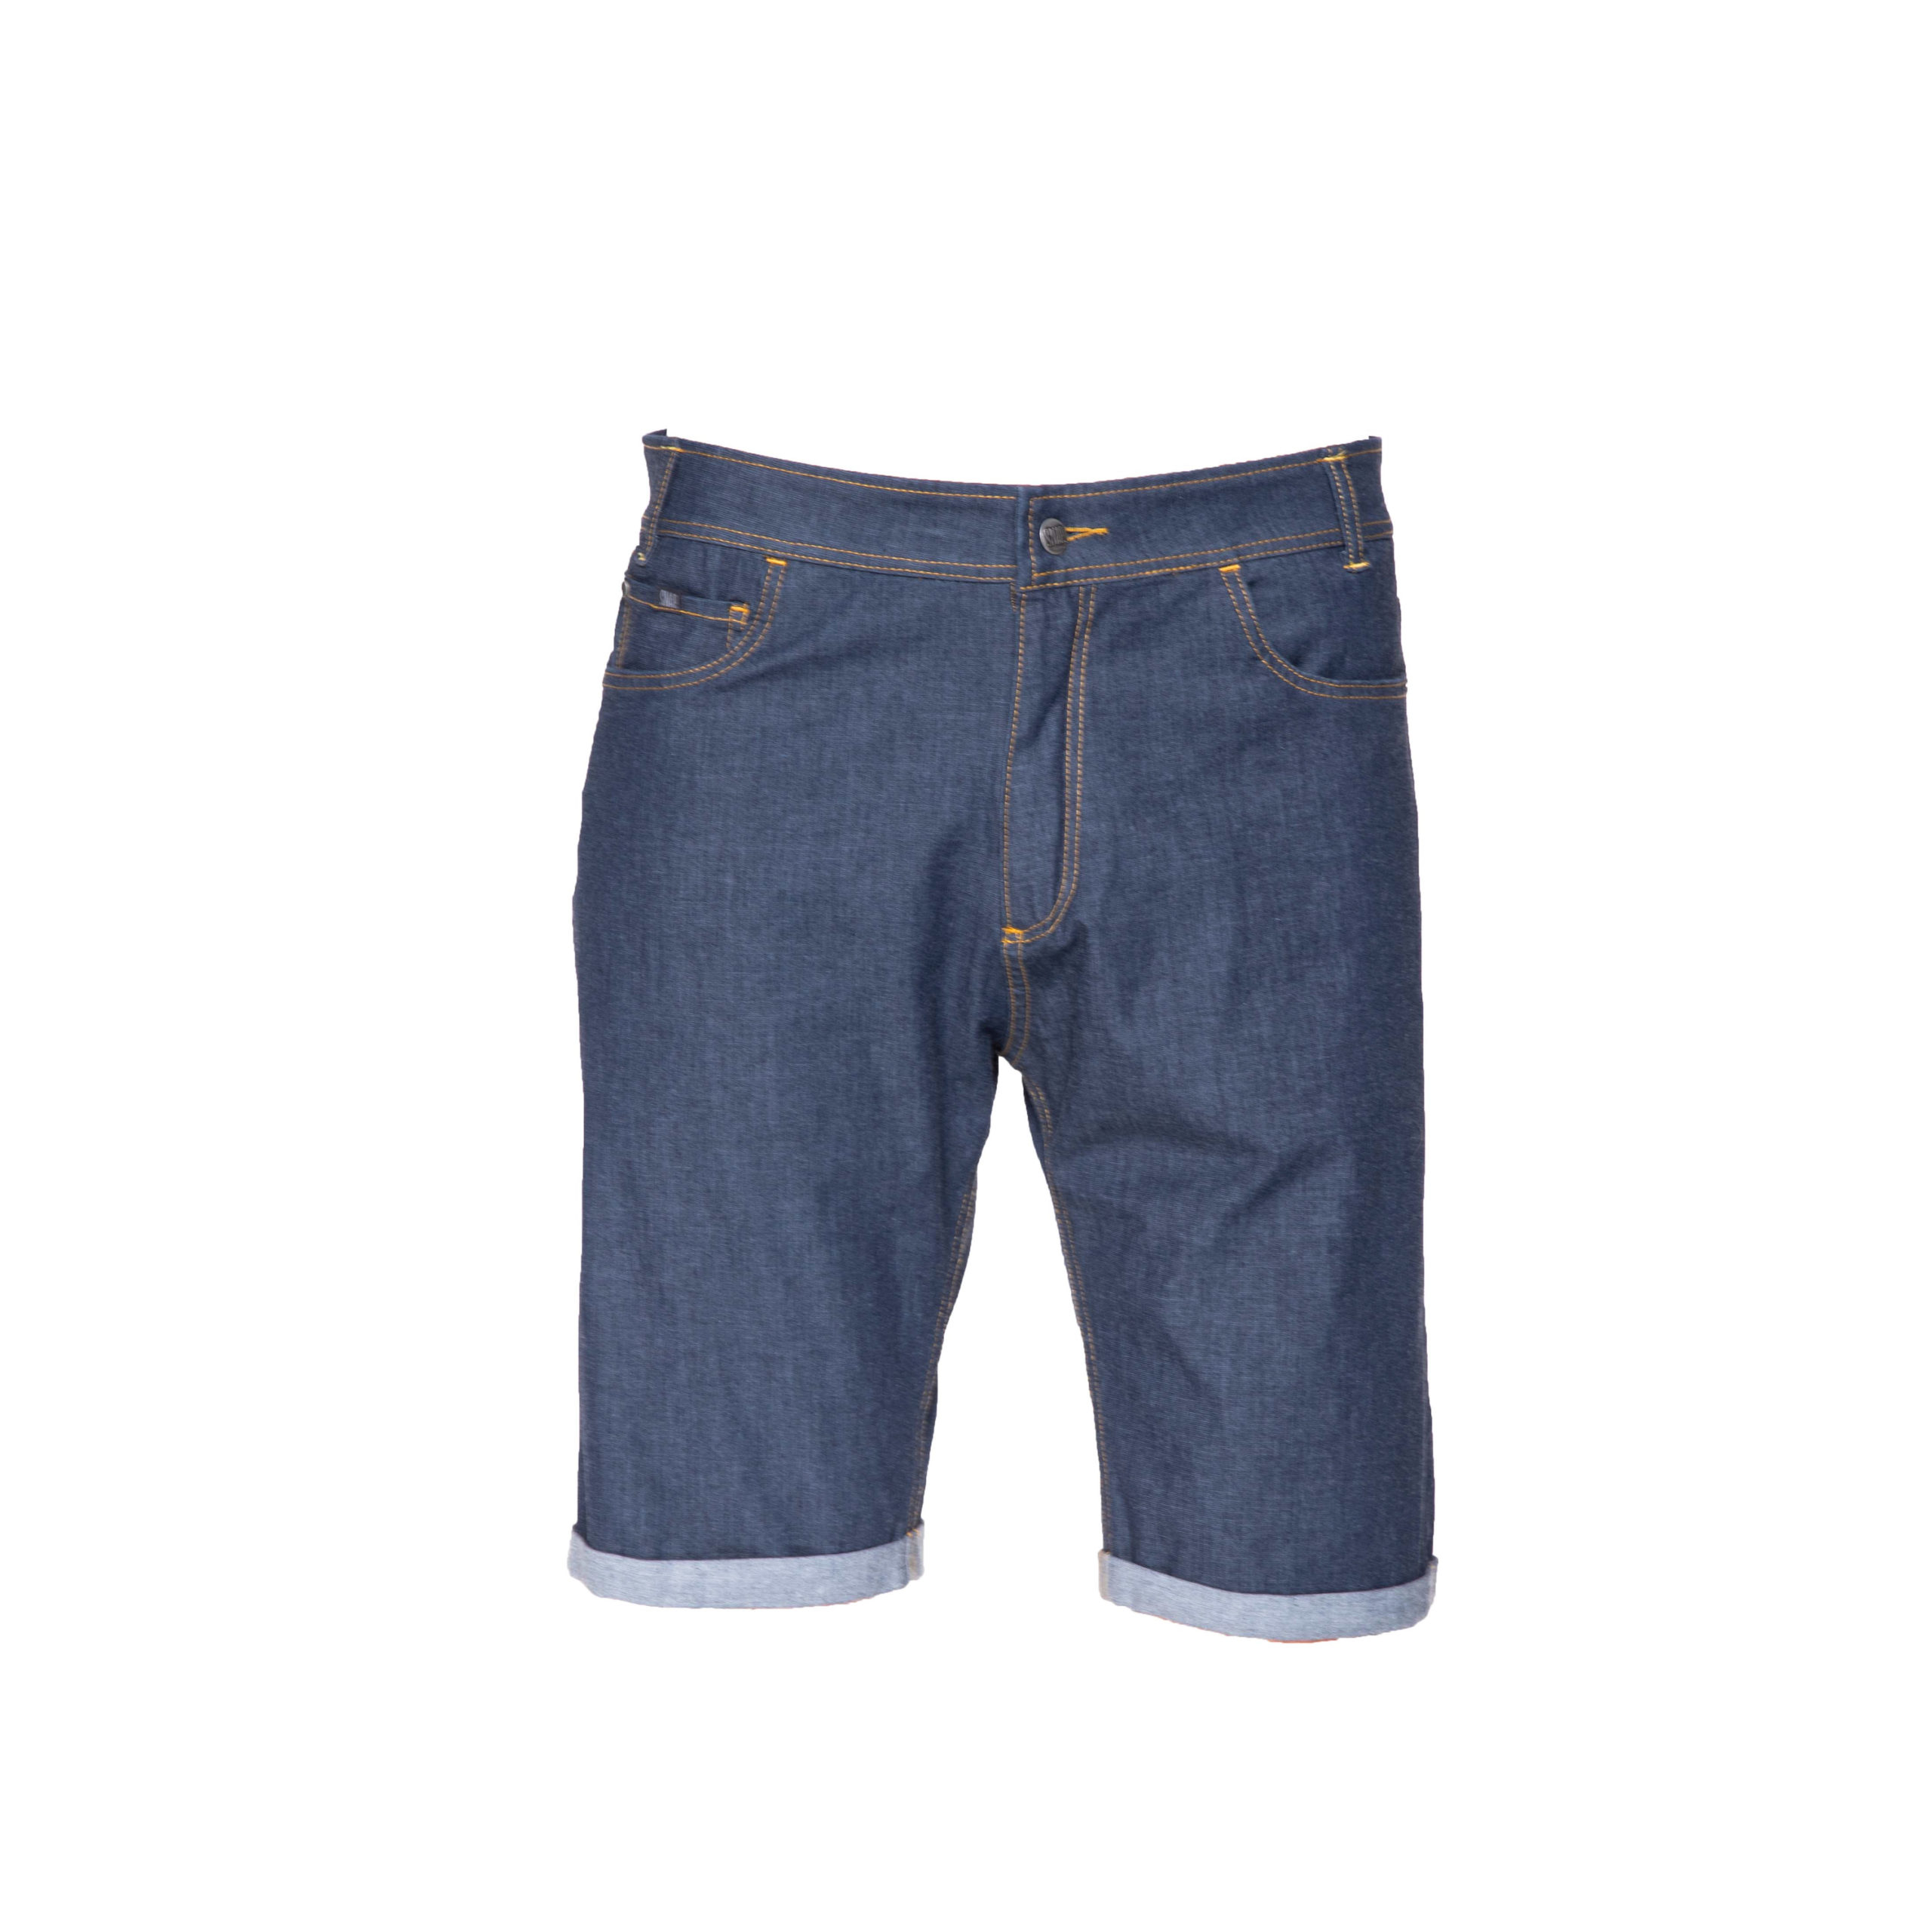 slim jeans shorts for man